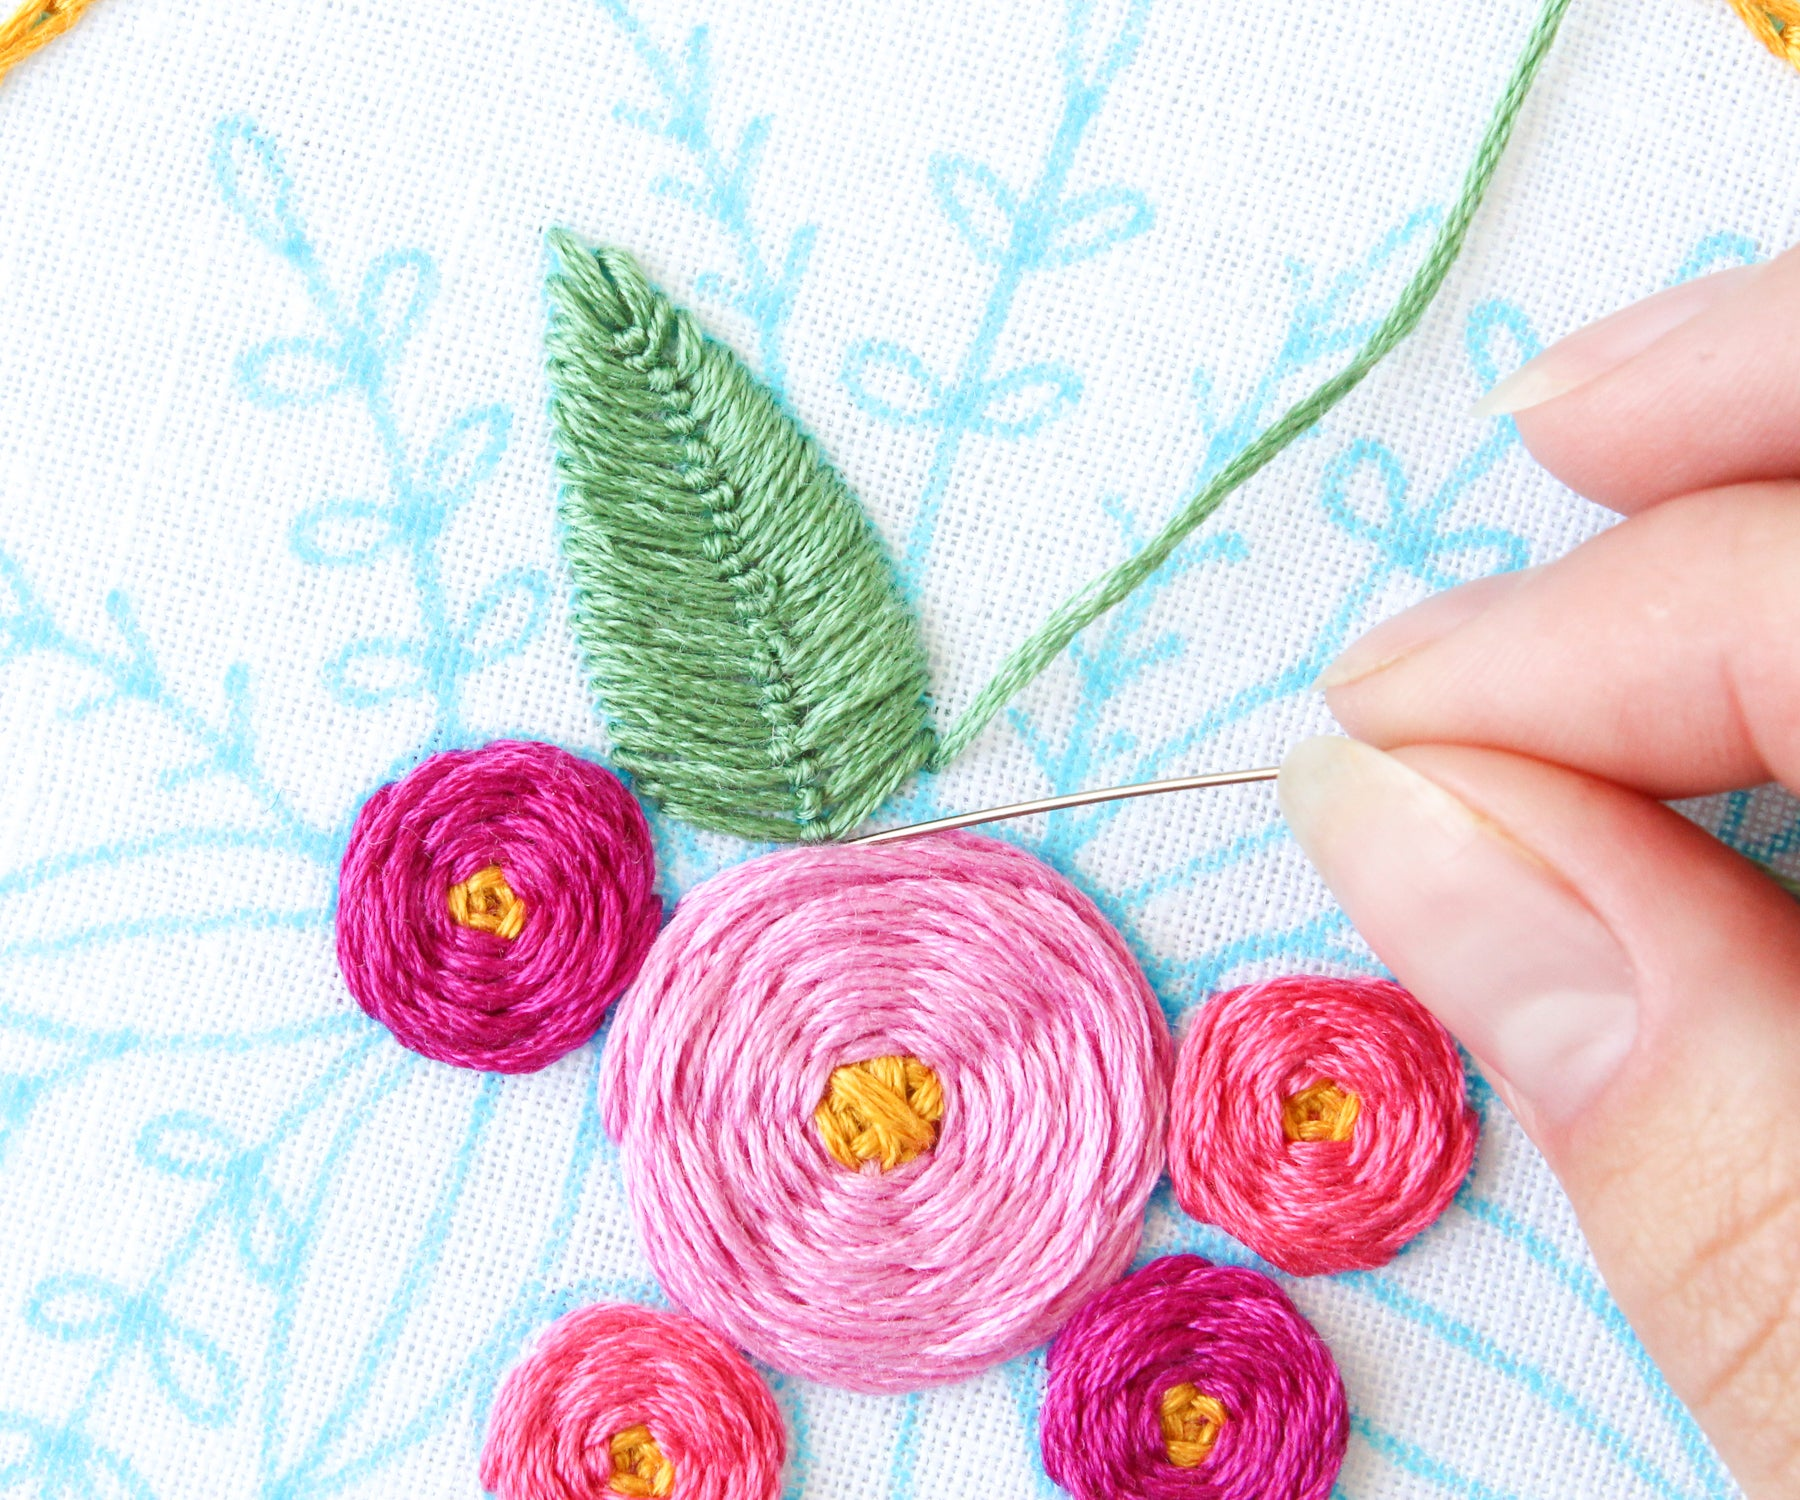 Free Online Embroidery Class